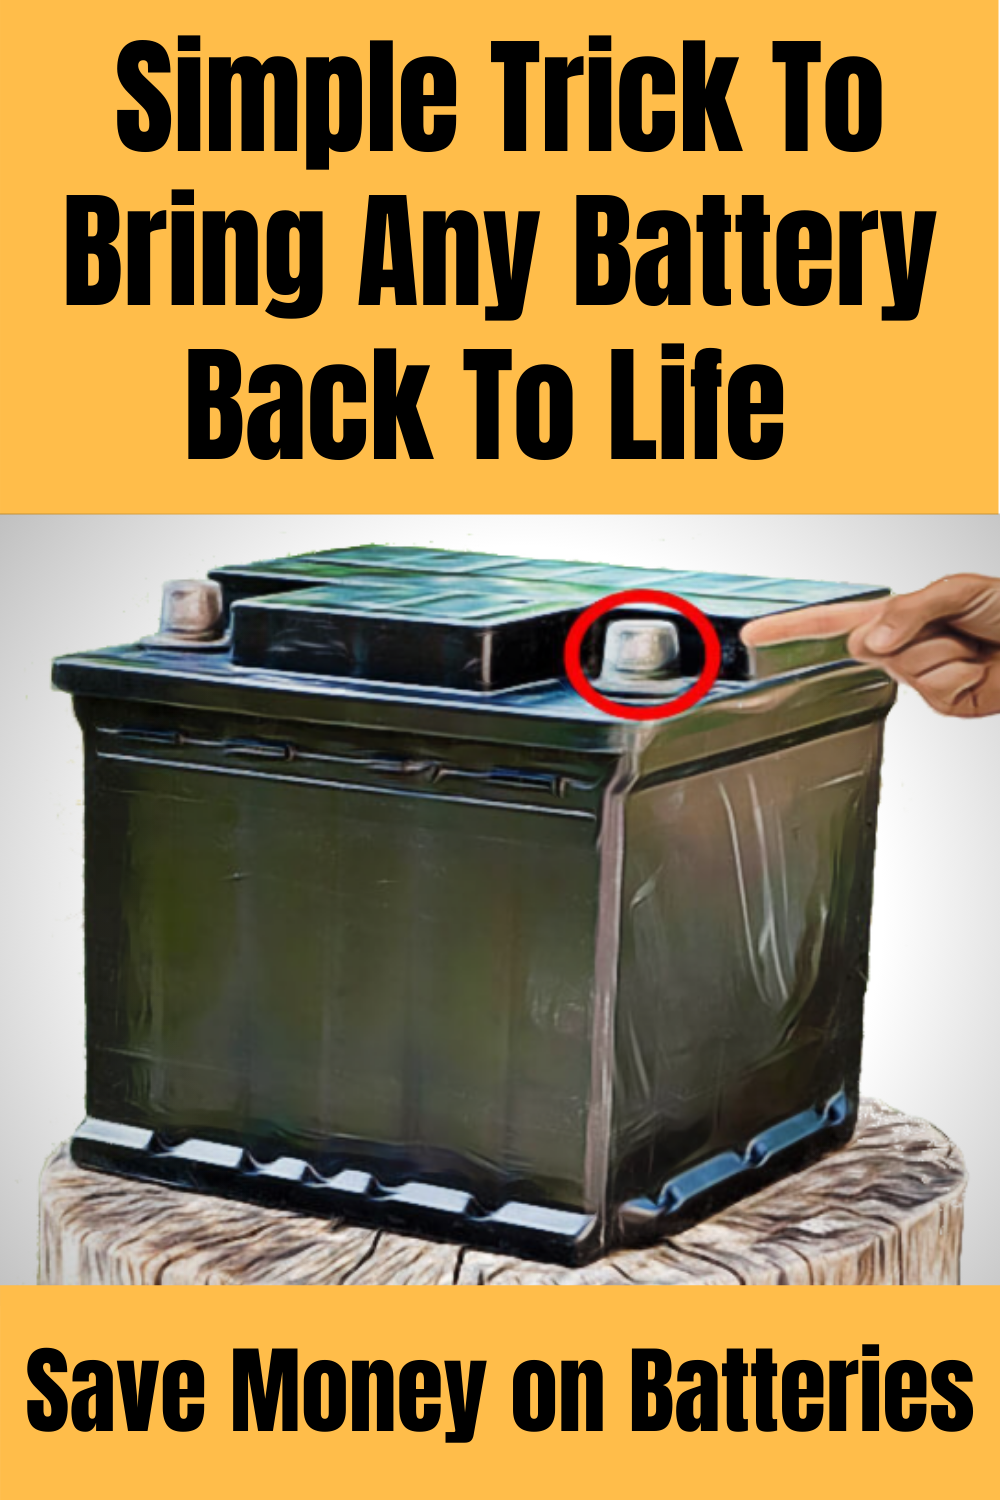 Simple Diy Battery Reconditioning In 2020 Easy Diy Selling Crafts Online Useful Life Hacks